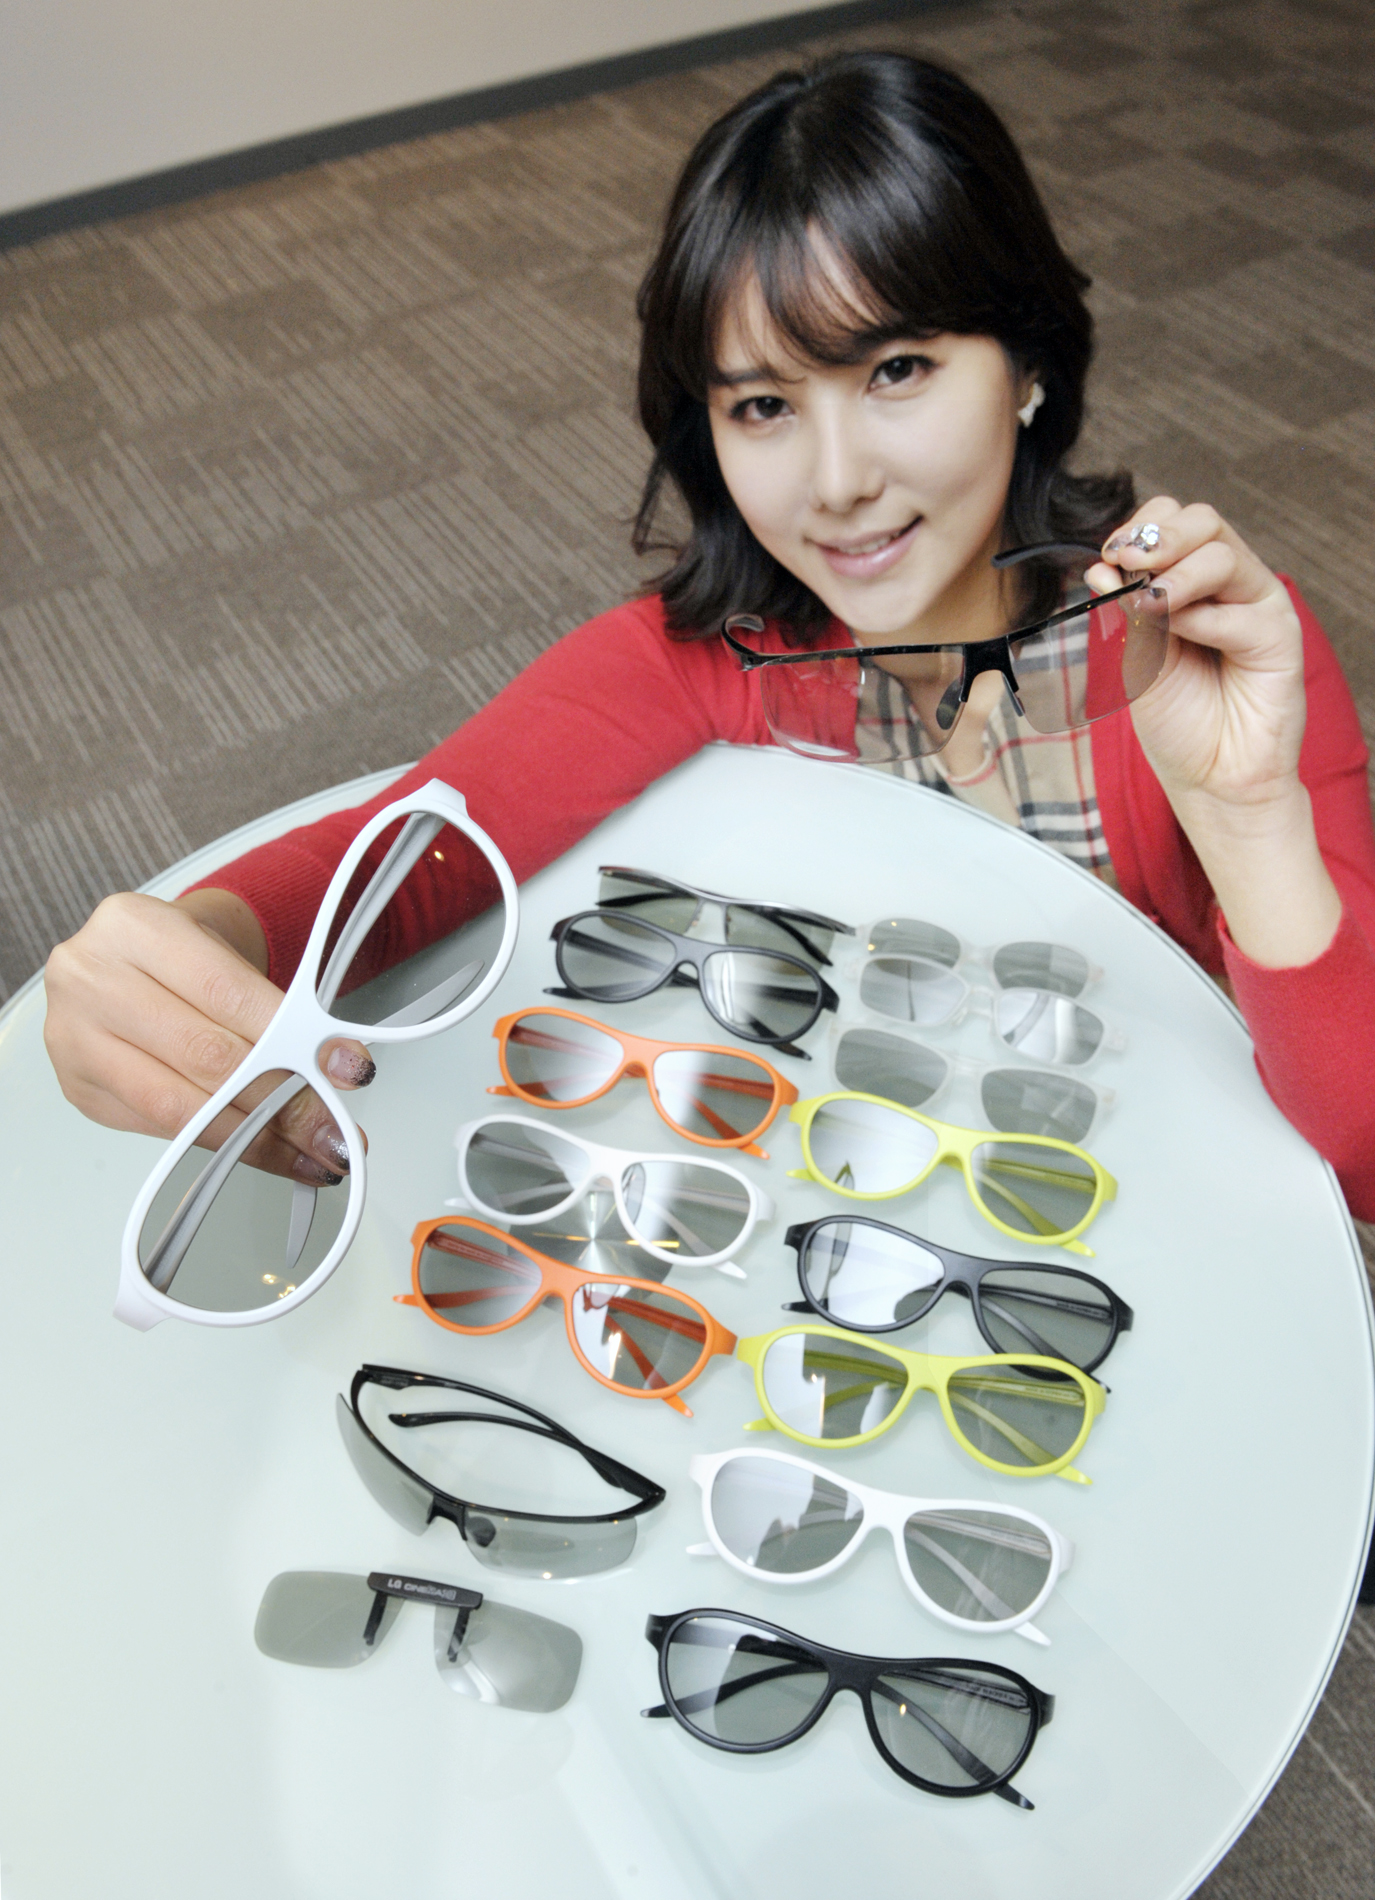 A model presenting the various types and colors of LG's new 3D glasses lineup on a table